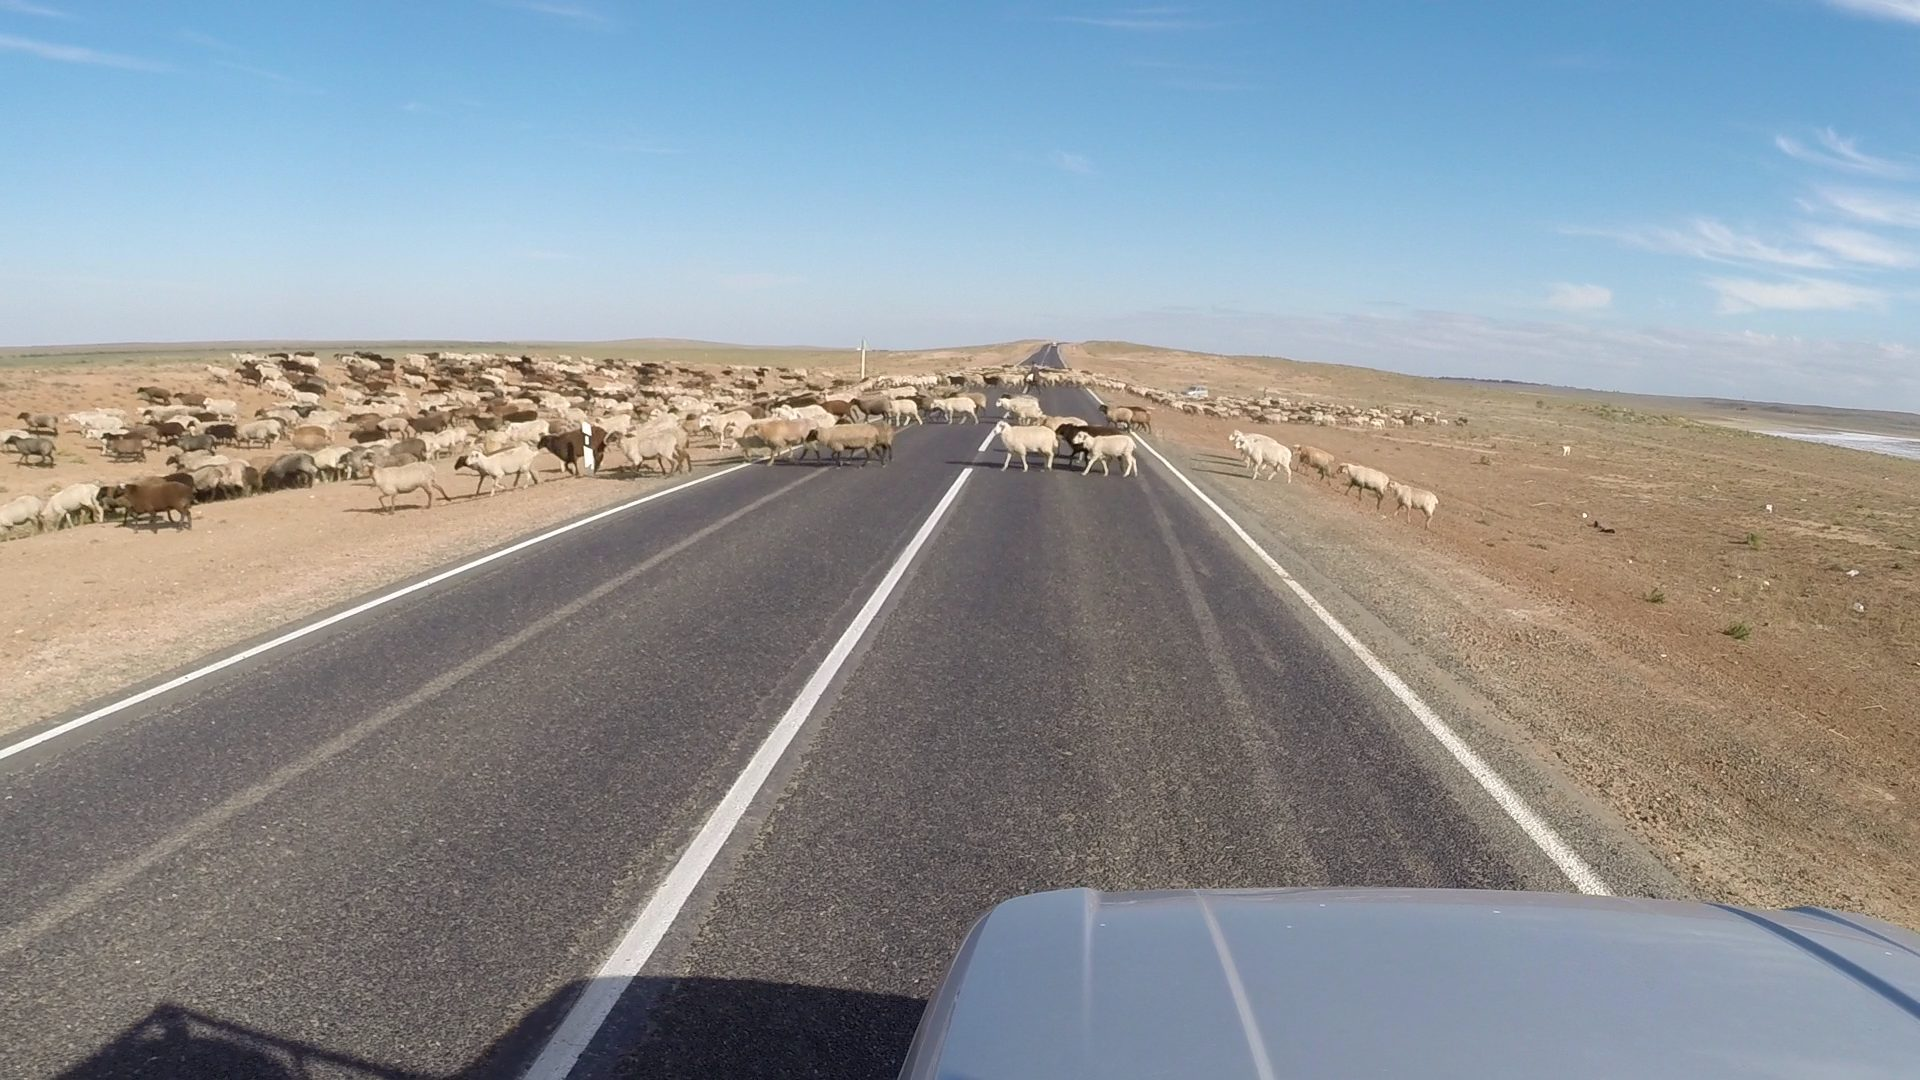 Day 30: Driving Towards Kazakhstan with Expired Visa